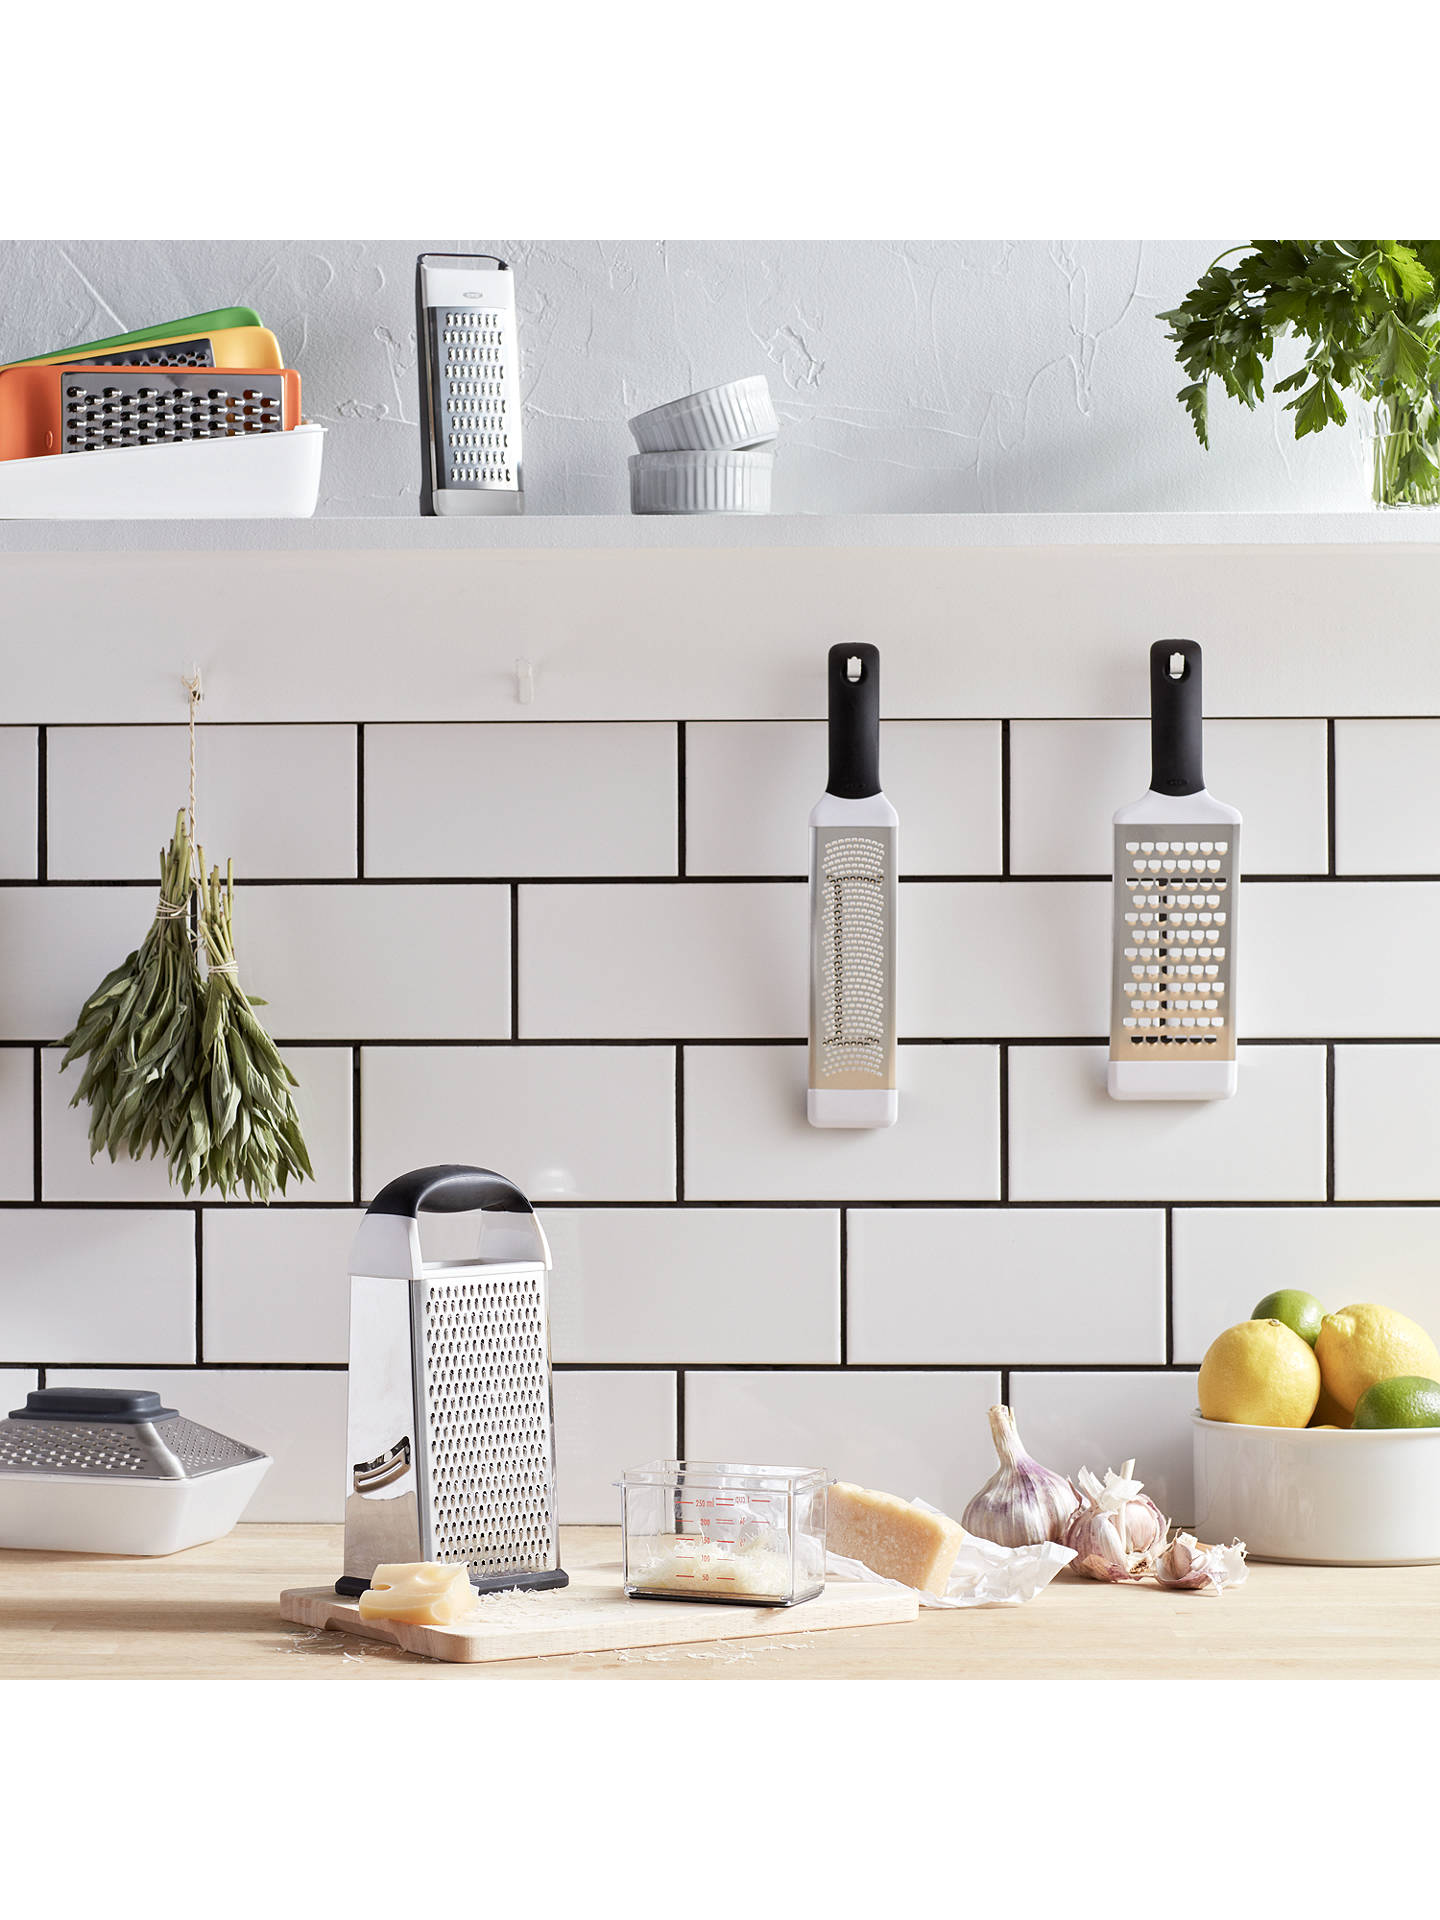 BuyOXO Good Grips Fine Grater Online at johnlewis.com